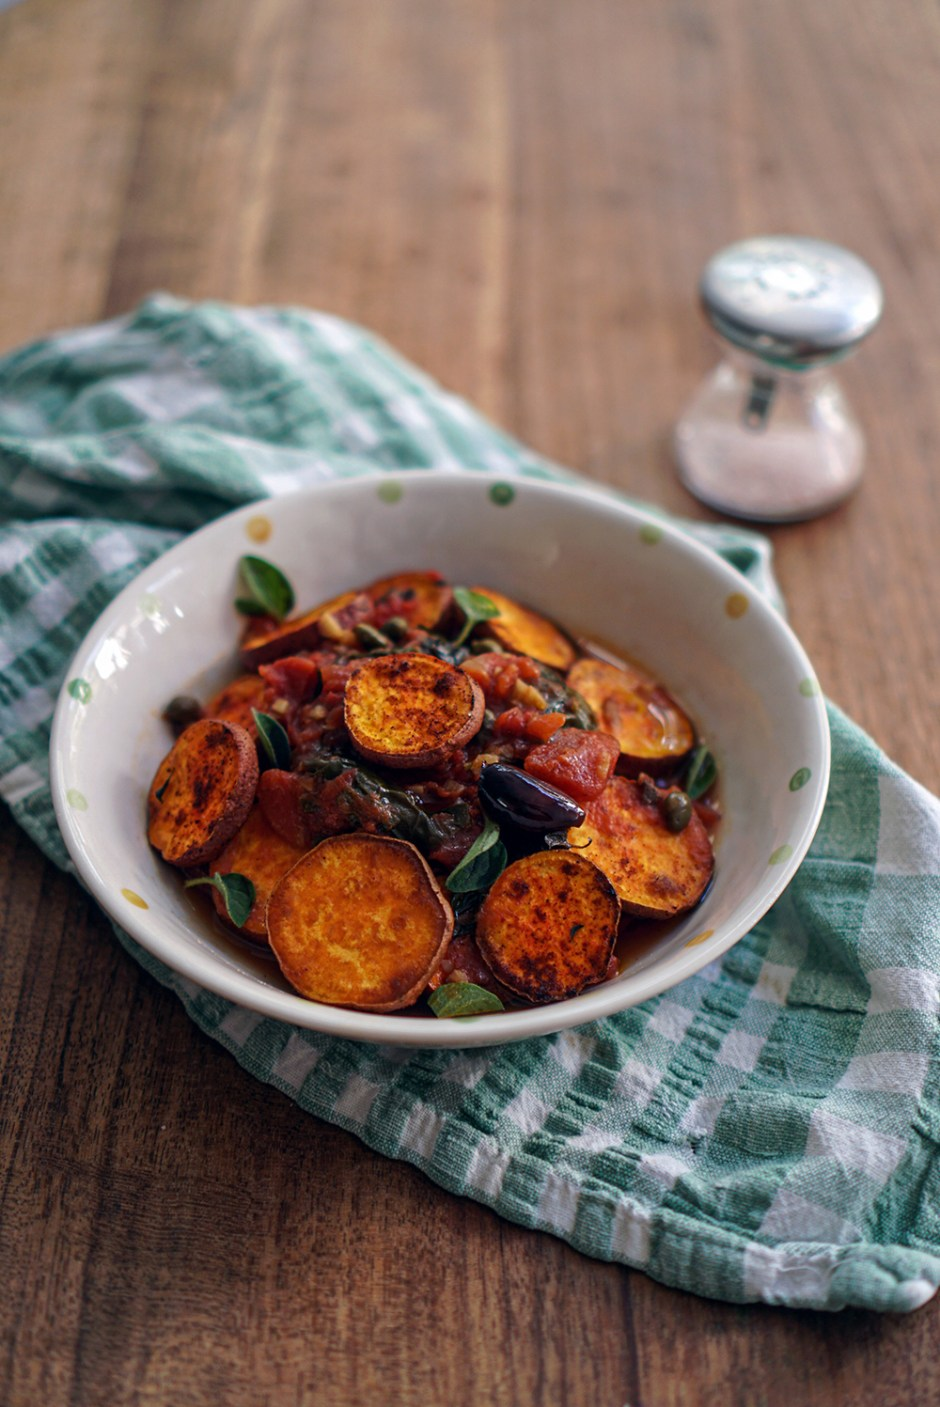 Roasted sweet potatoes with puttanesca sauce